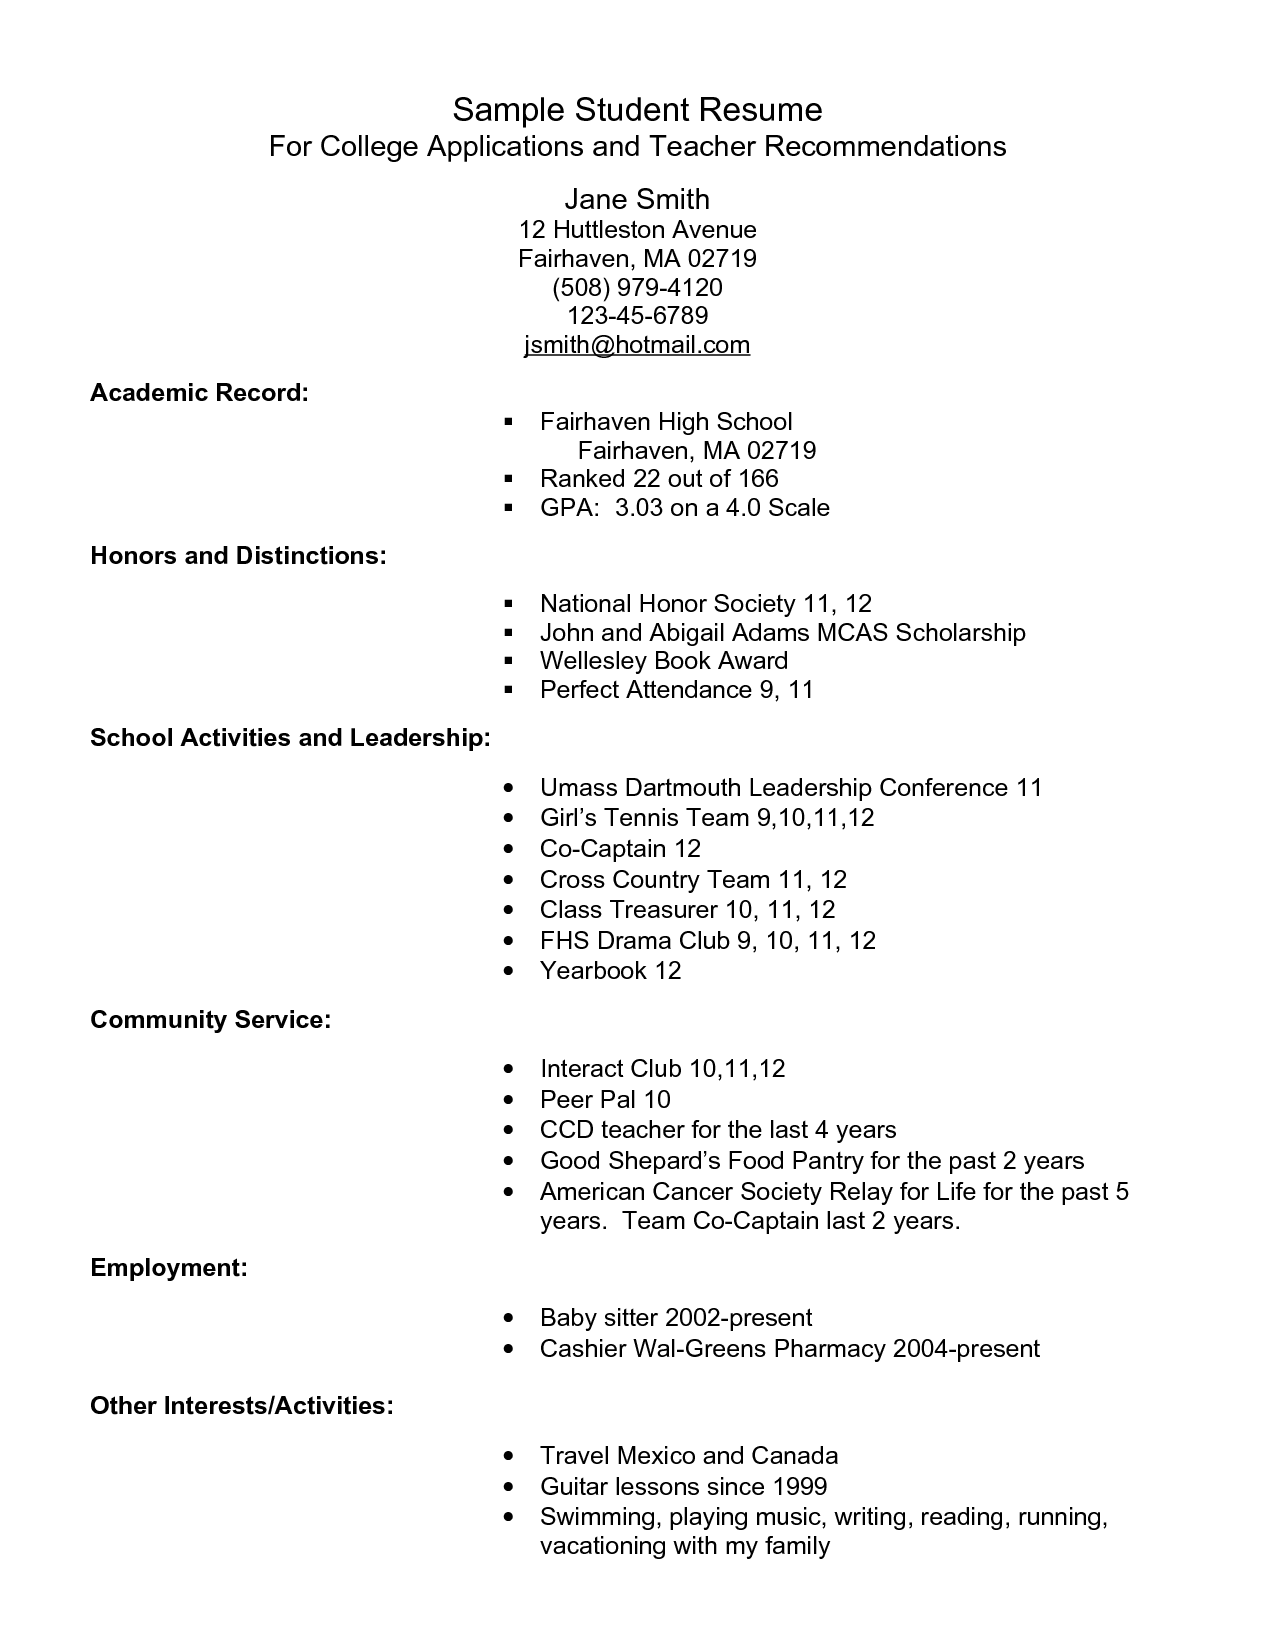 Job Resume Template Example Resume For High School Students For College Applications